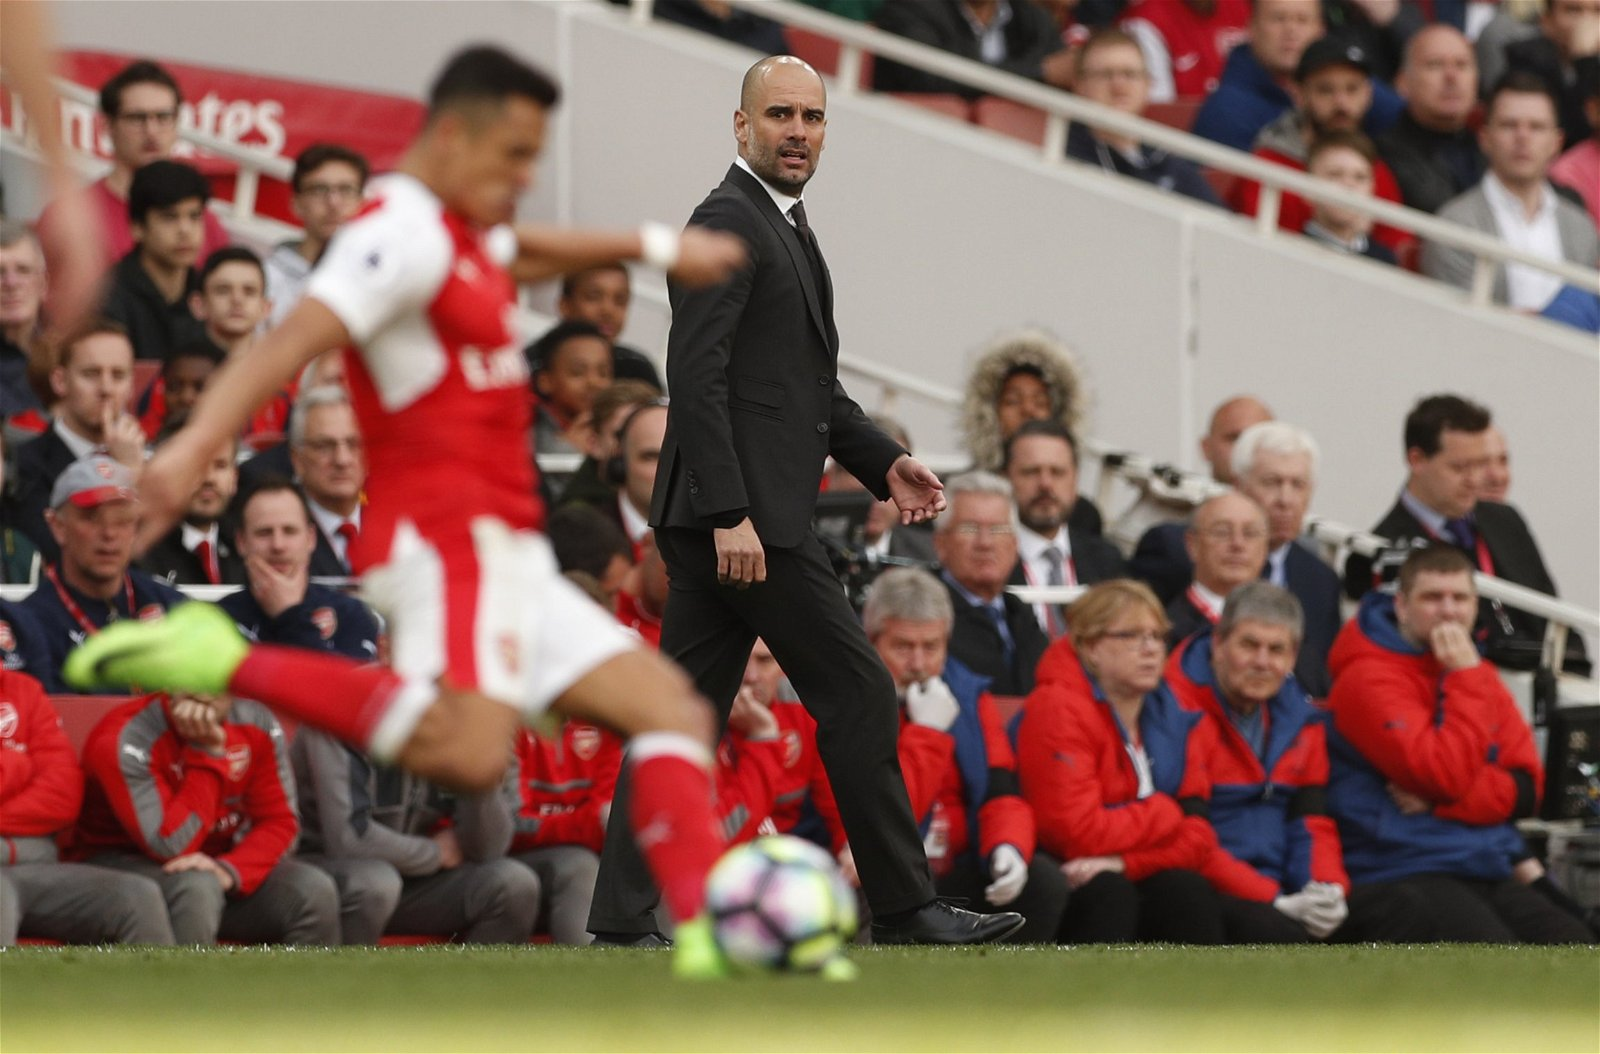 Pep Guardiola watches Alexis Sanchez